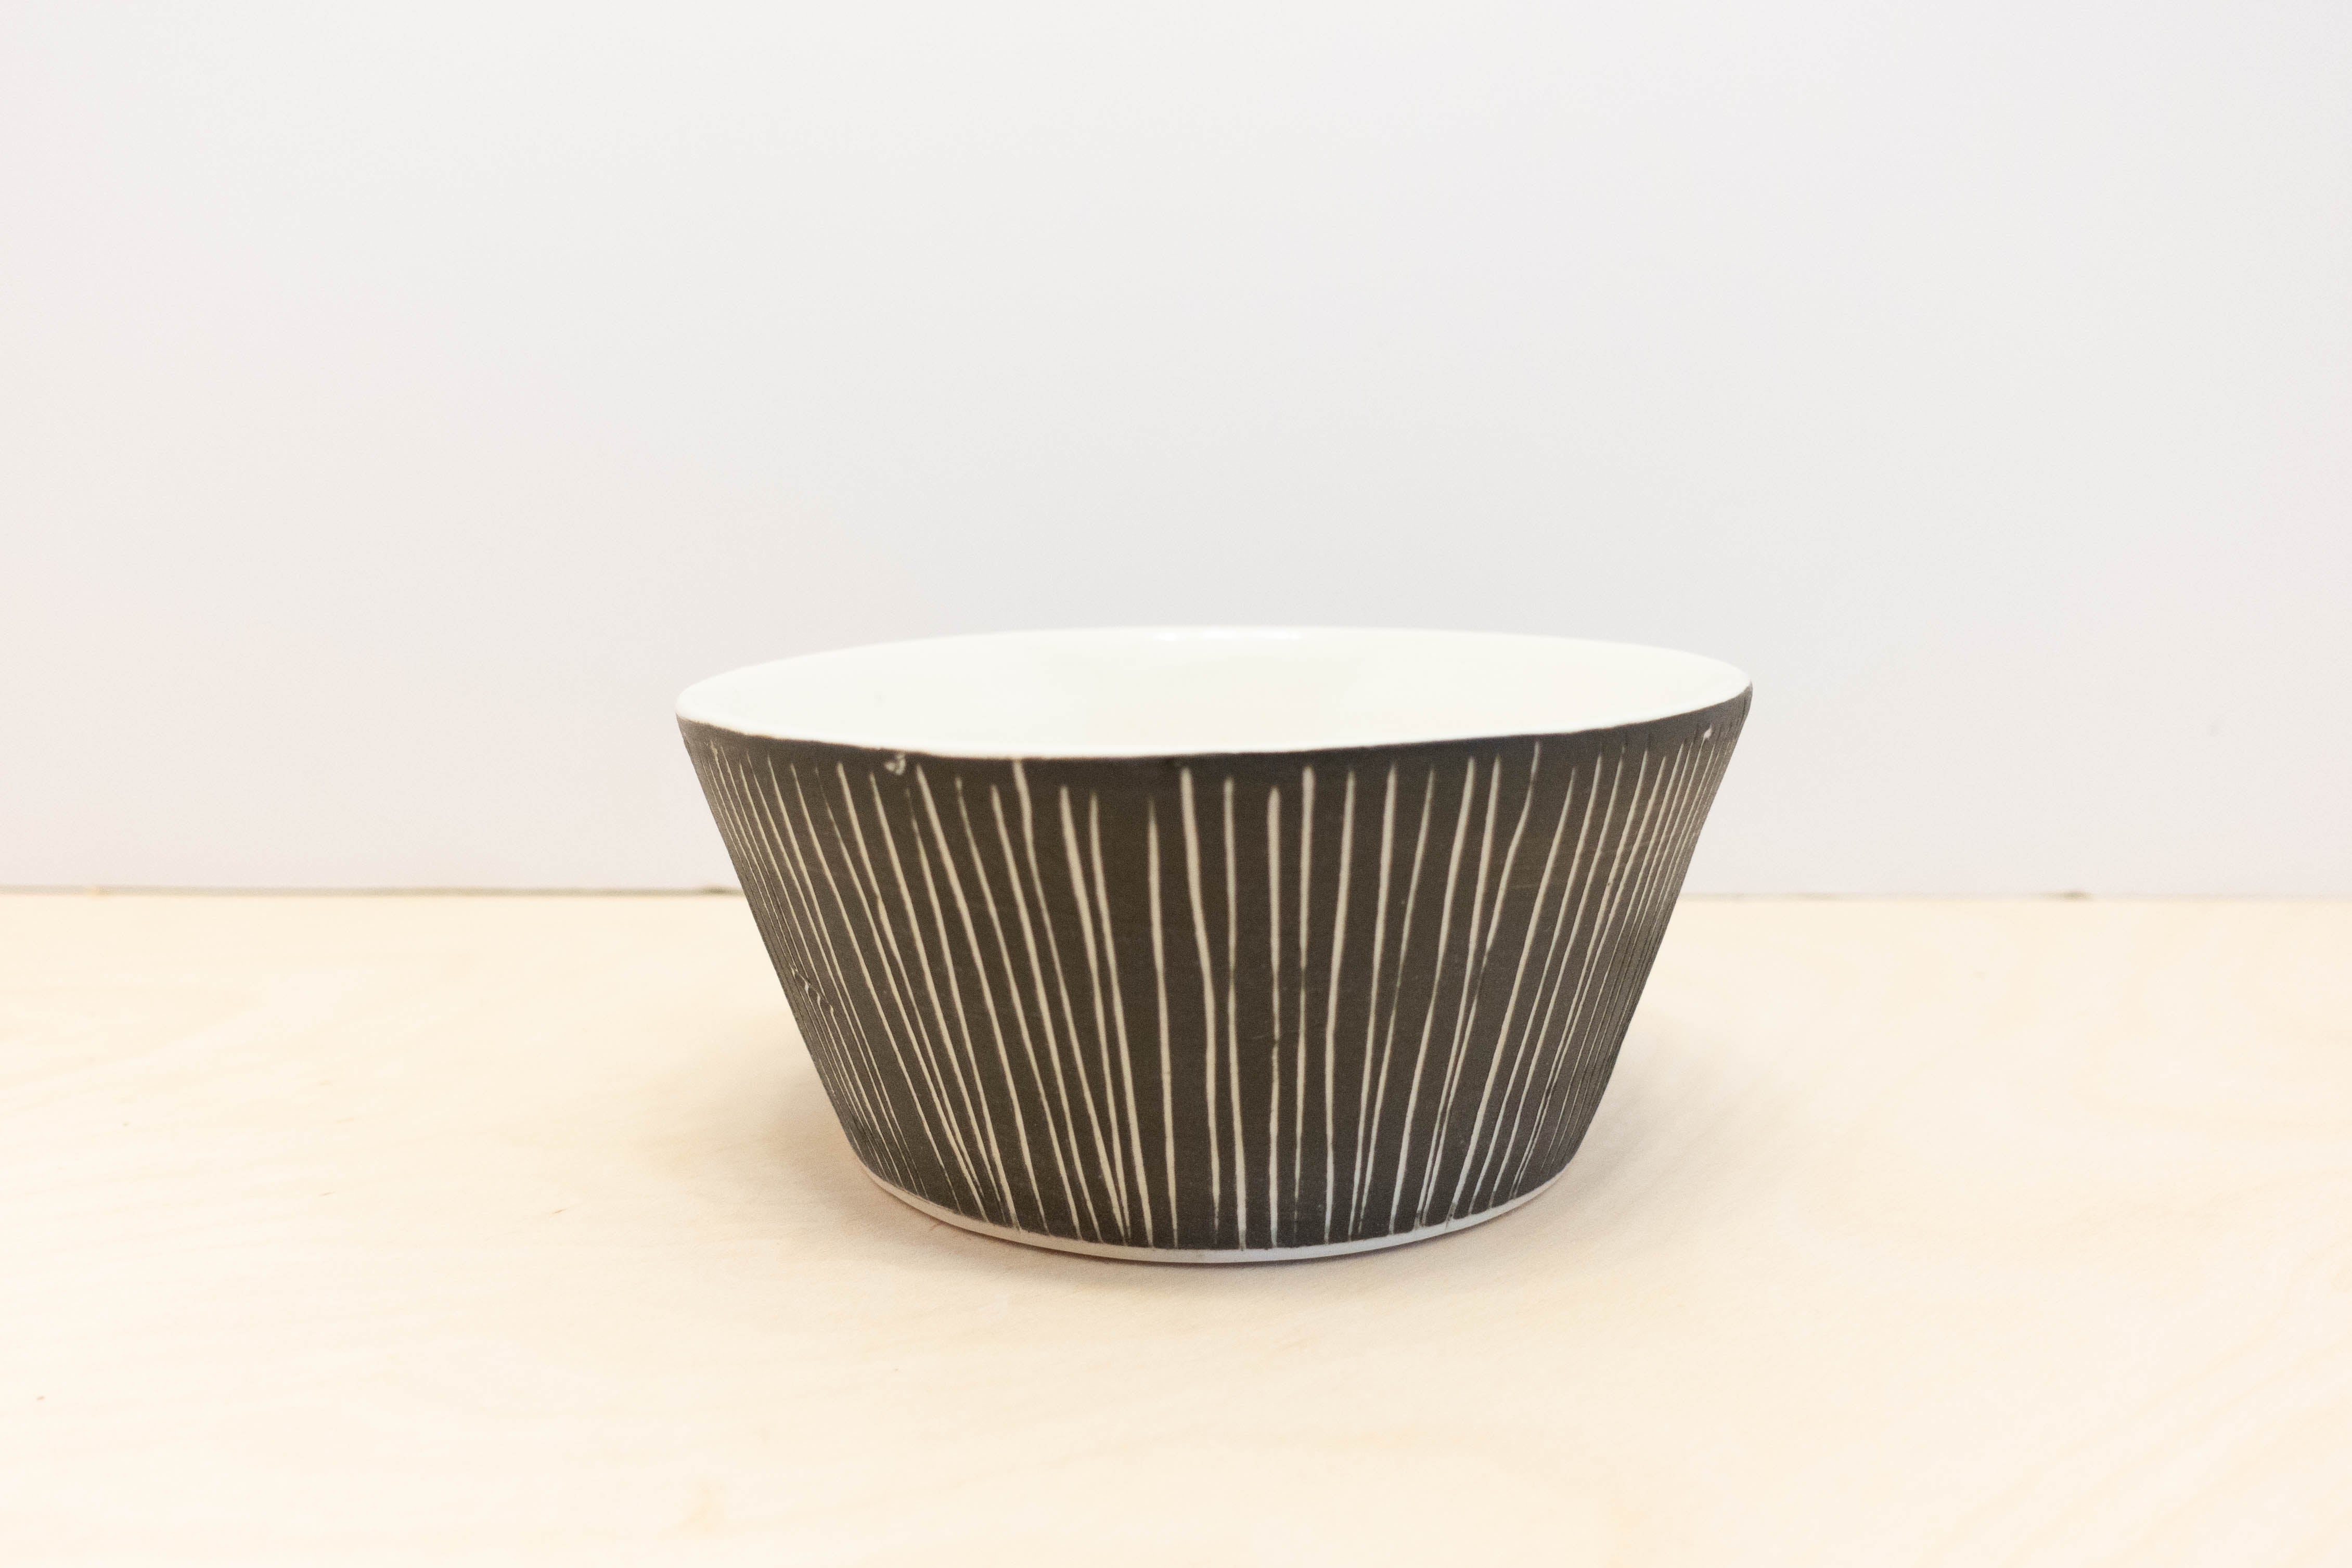 Made-to-order Porcelain Small Bowl